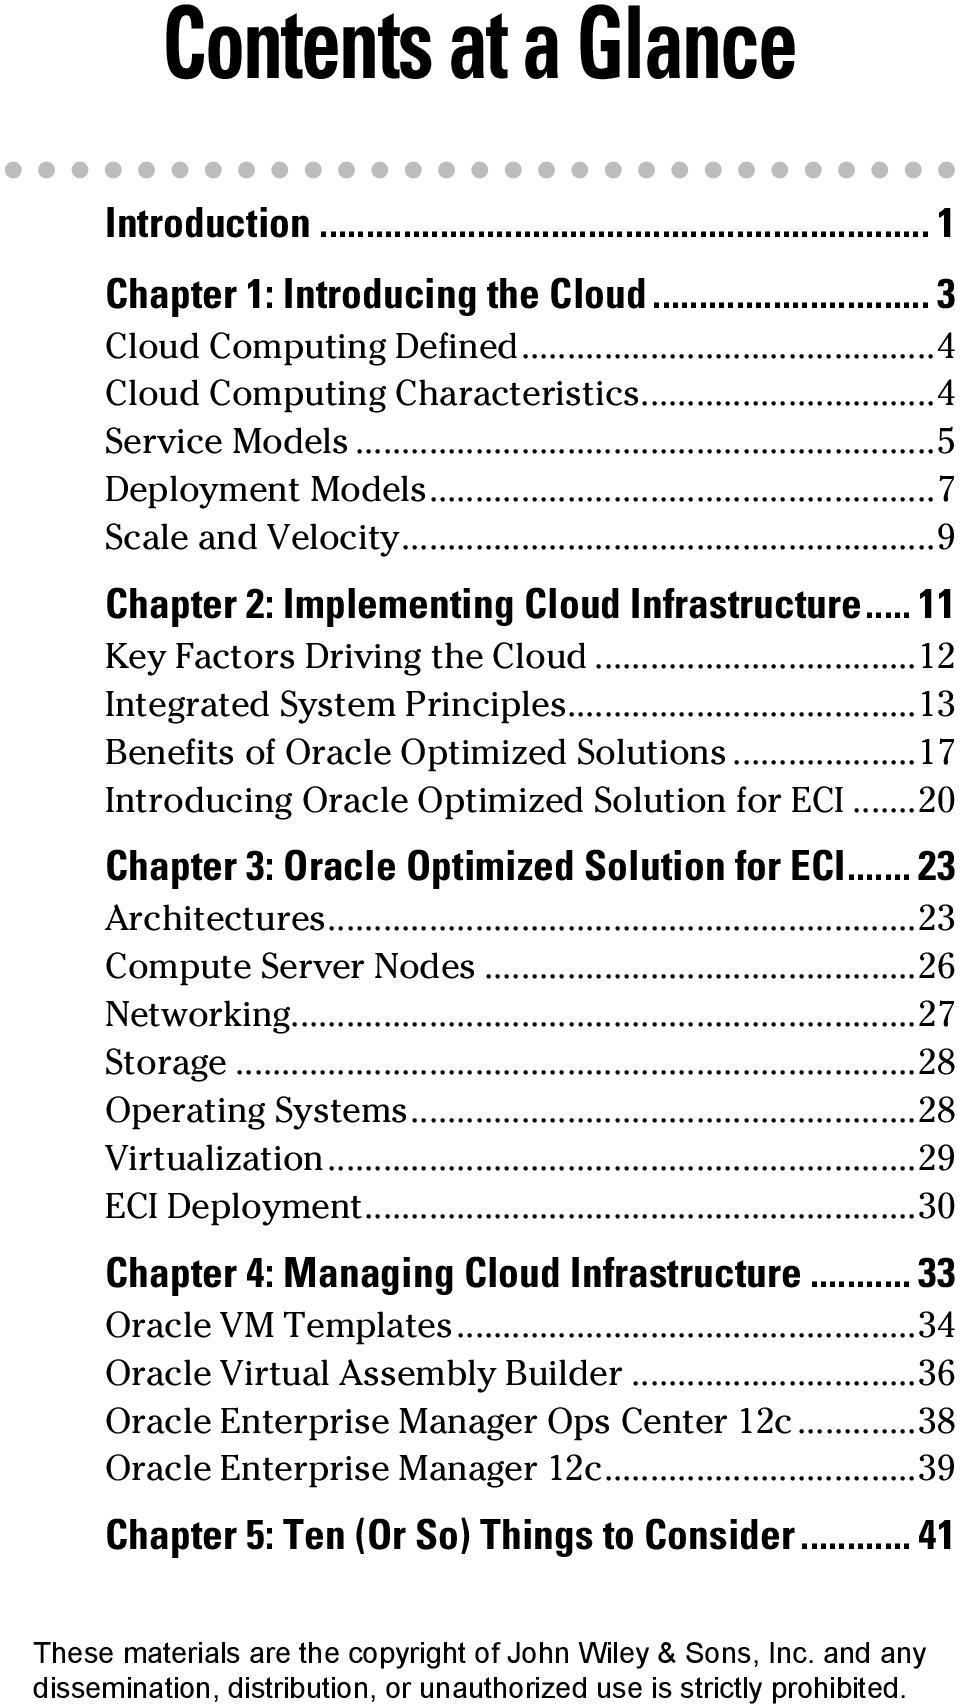 ..17 Introducing Oracle Optimized Solution for ECI...20 Chapter 3: Oracle Optimized Solution for ECI... 23 Architectures...23 Compute Server Nodes...26 Networking...27 Storage...28 Operating Systems.